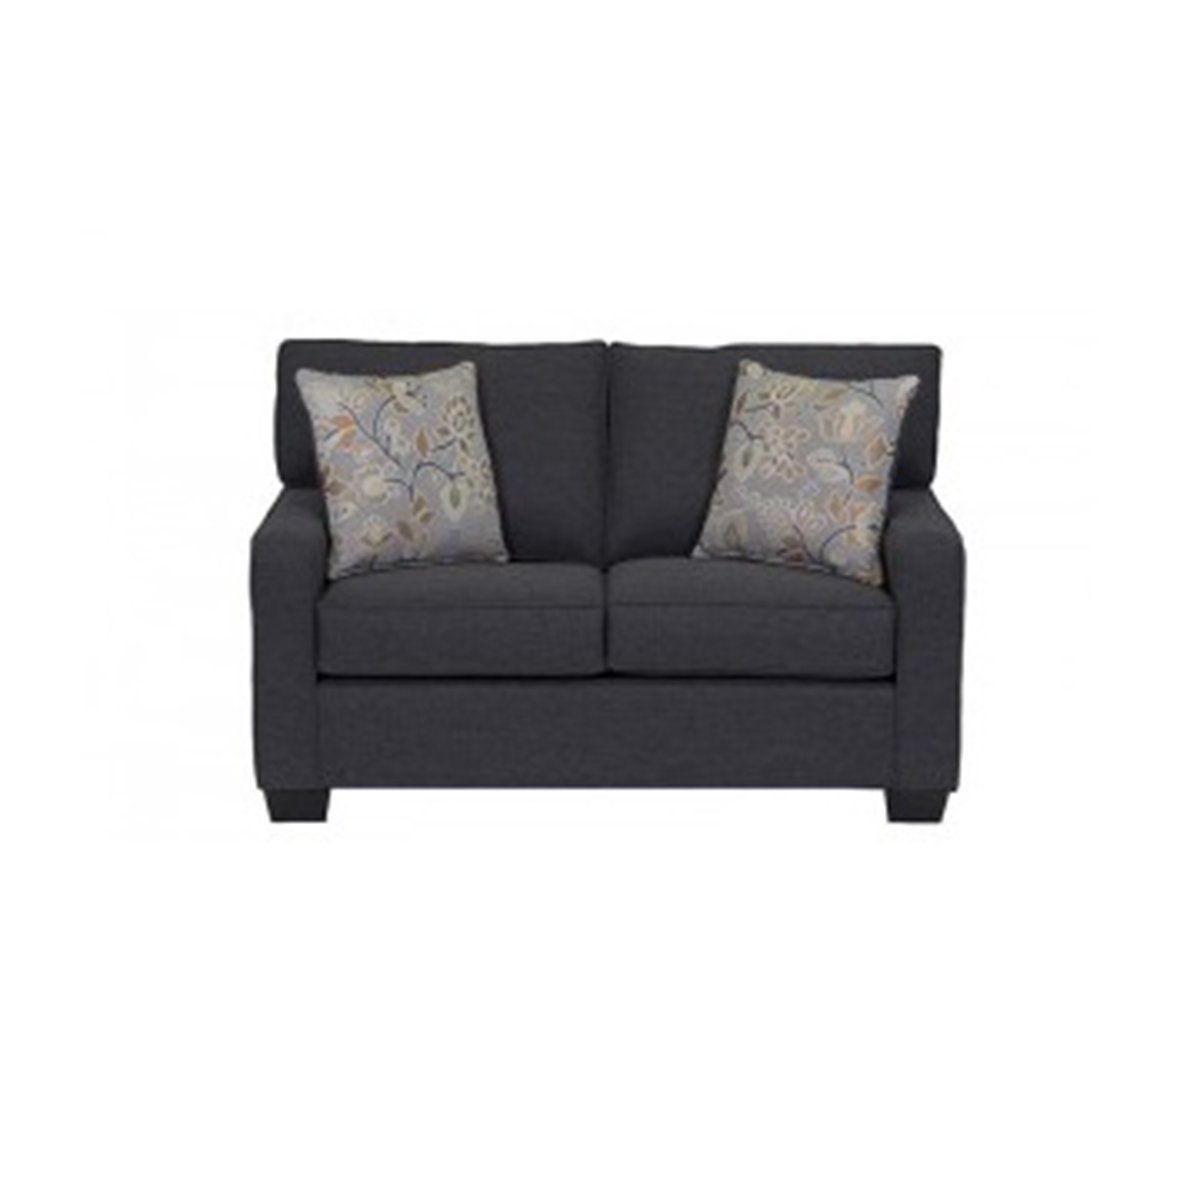 DYNASTY CUSTOM LOVESEAT. MADE IN CANADA. CHOOSE YOUR FABRIC SAMPLE - Showhome Furniture